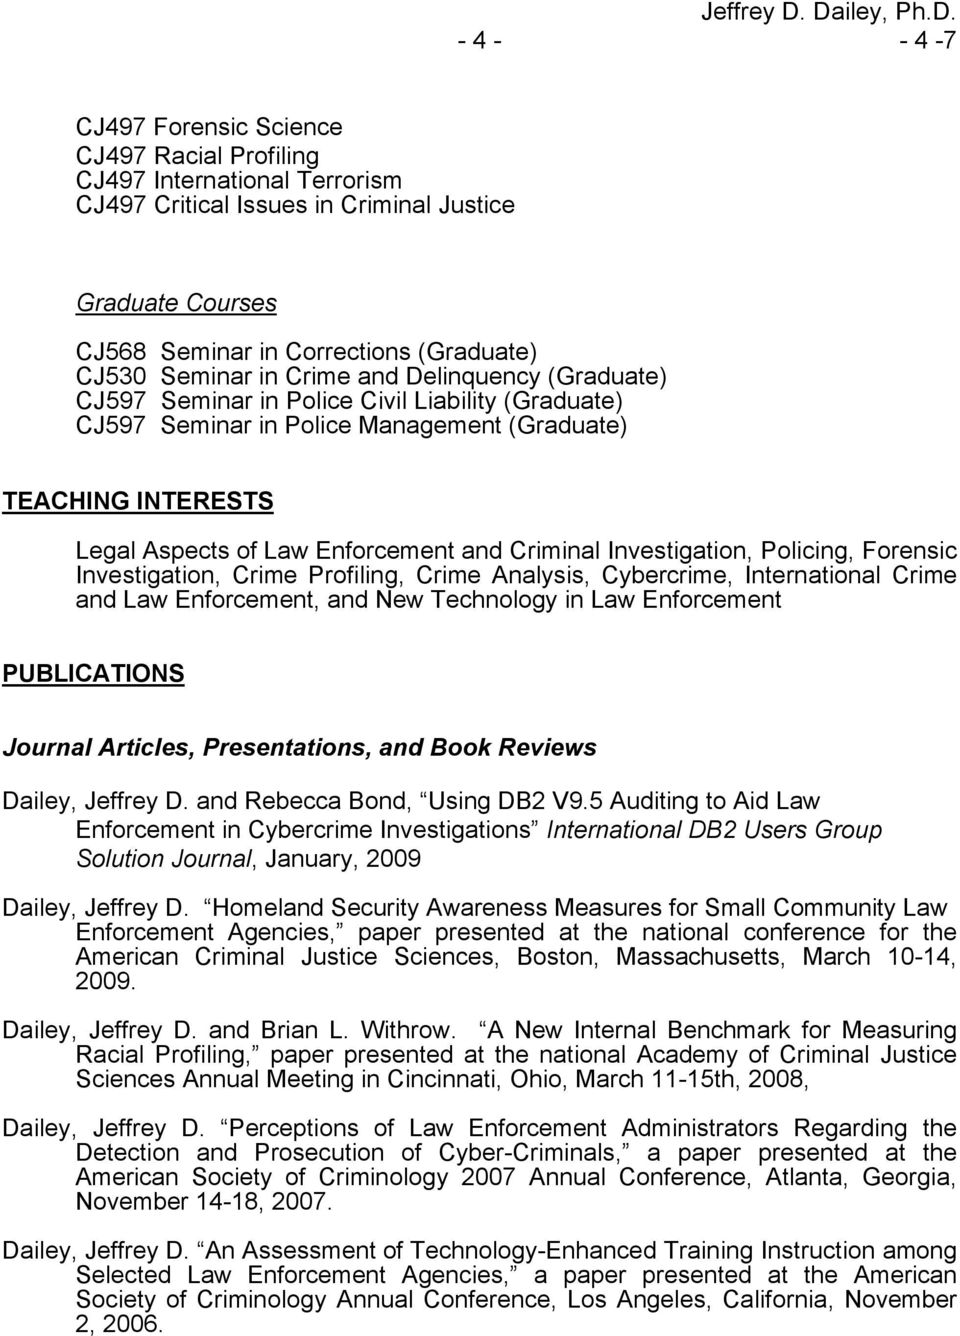 Criminal Investigation, Policing, Forensic Investigation, Crime Profiling, Crime Analysis, Cybercrime, International Crime and Law Enforcement, and New Technology in Law Enforcement PUBLICATIONS